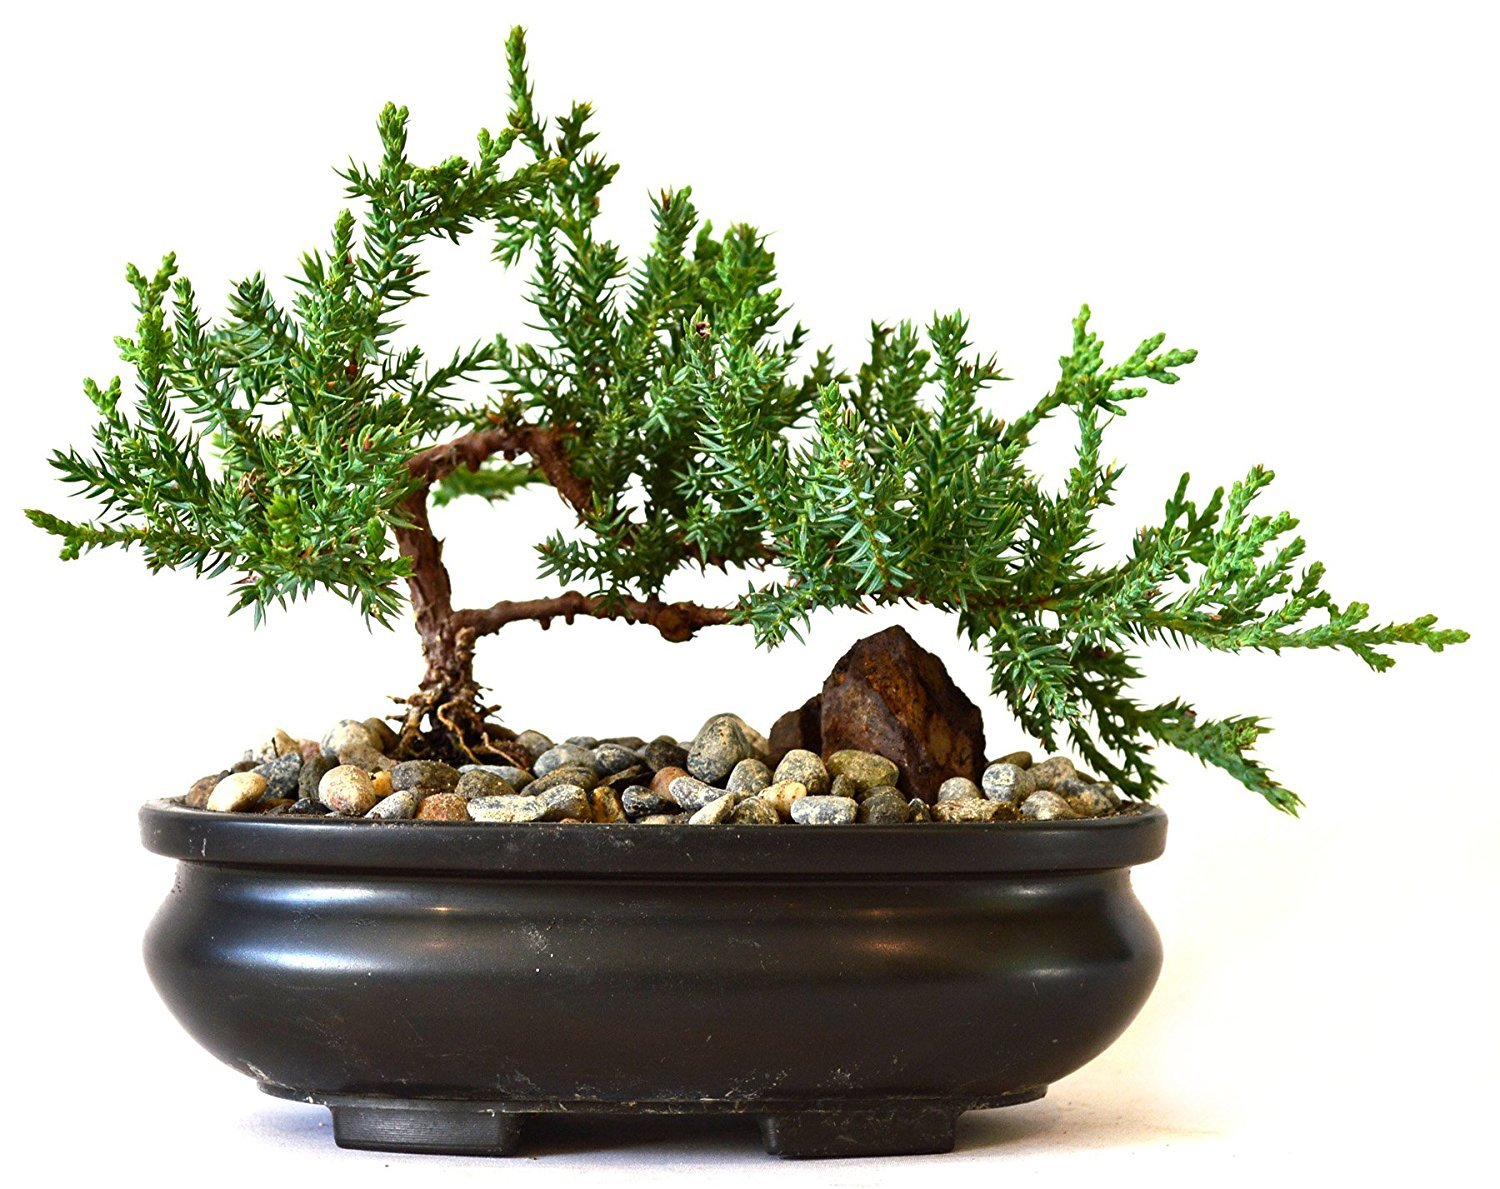 Amazon.com: 9GreenBox - Juniper Tree Bonsai with Bonsai Pot: Home & Kitchen